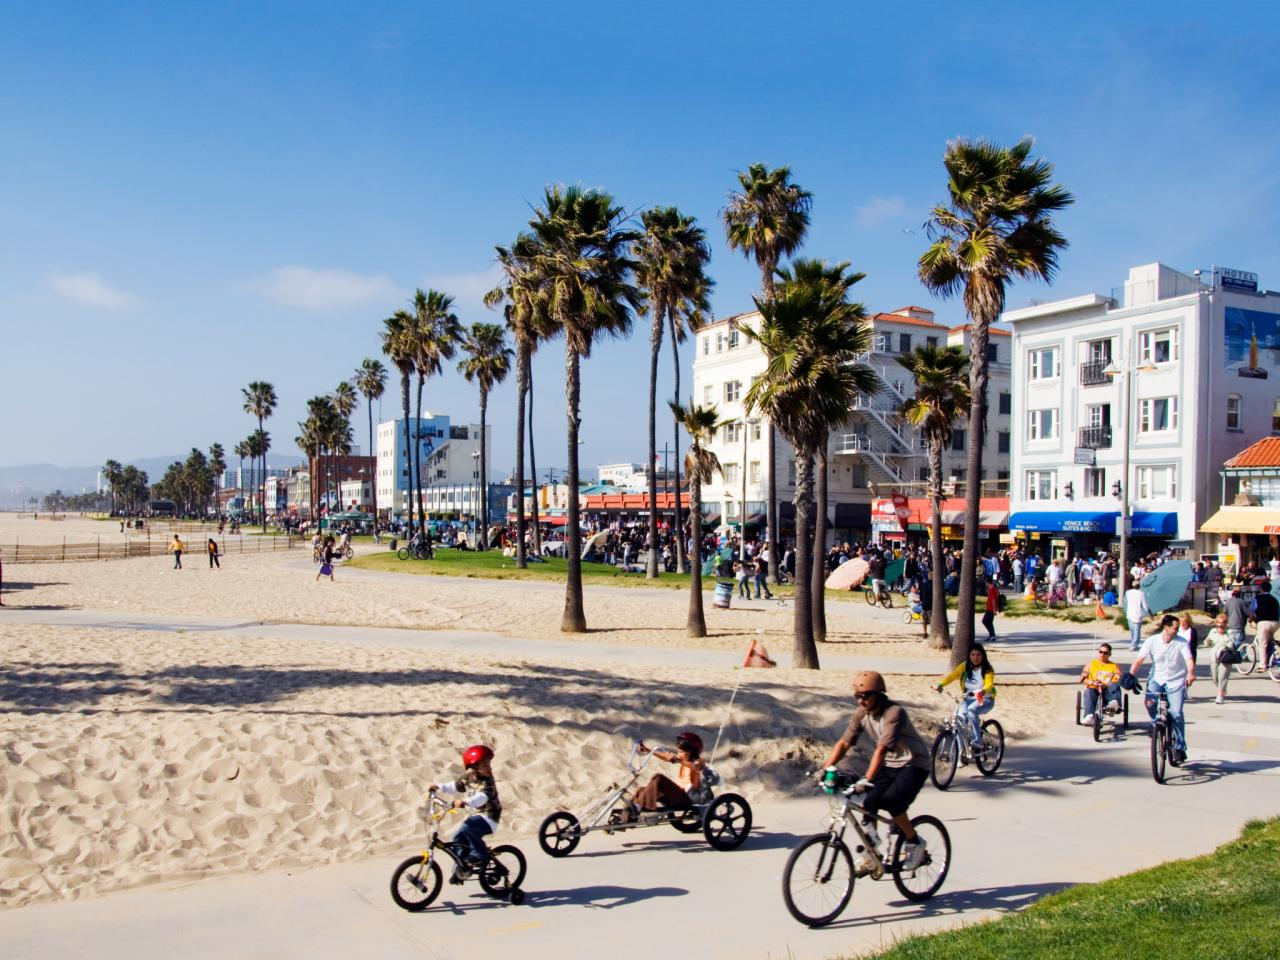 top-california-beach-getaways-venice-beach.jpg.rend.tccom.1280.960